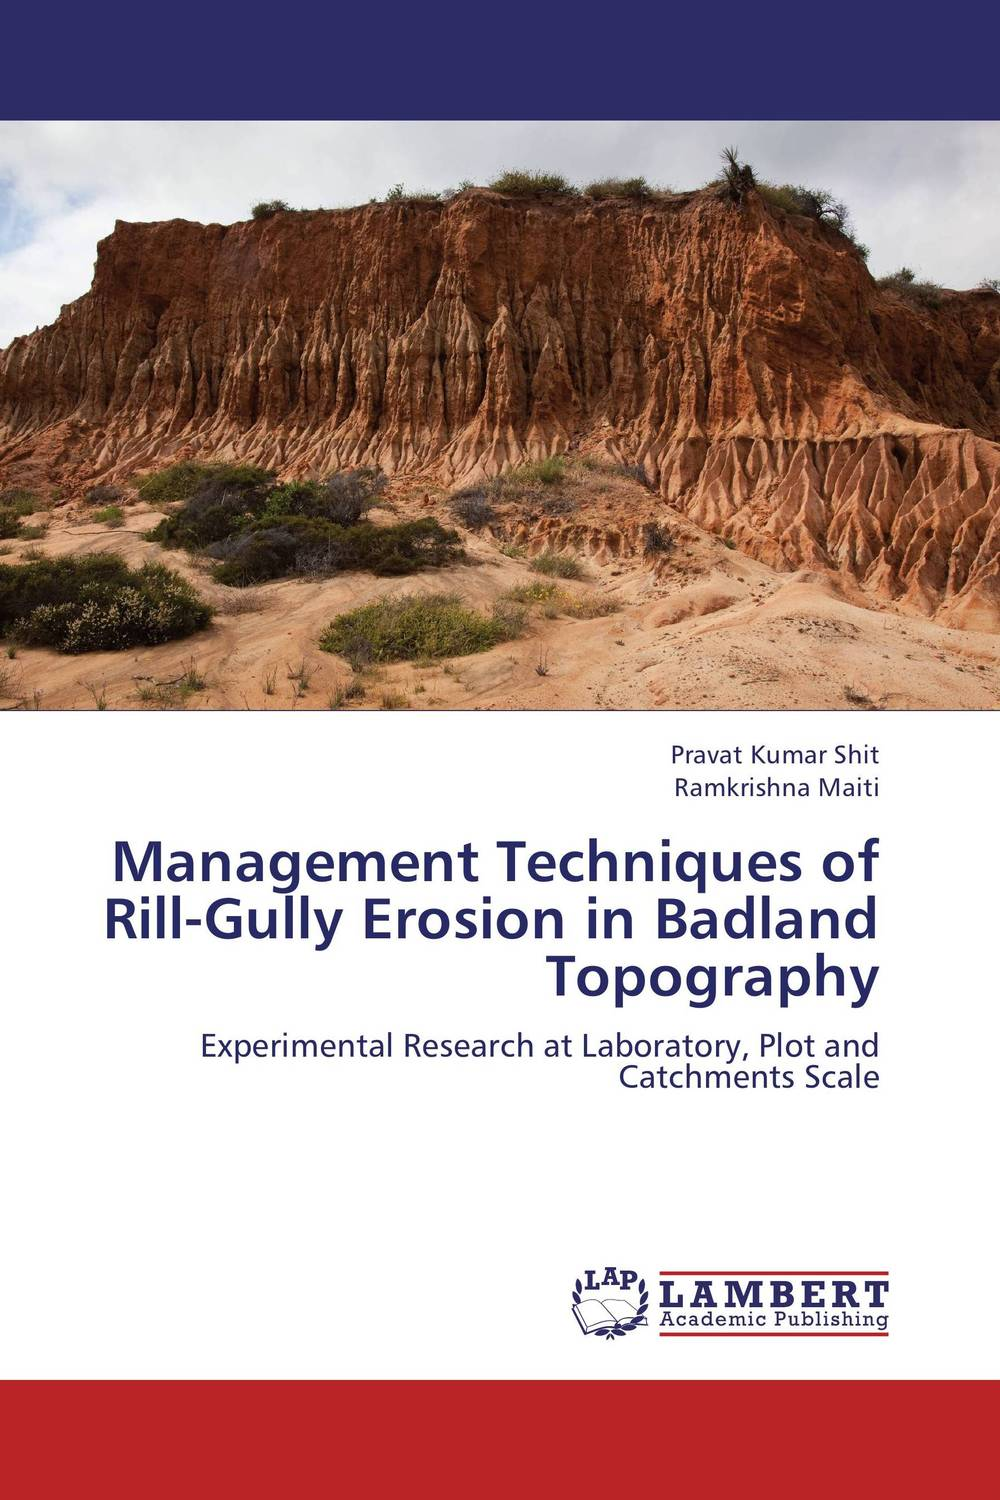 Management Techniques of Rill-Gully Erosion in Badland Topography projector lamp et lab80 for panasonic pt lb75e lb75nte lb78 lb78u lb80e lb80u lb80nte lb80ntu lb90 lw80ntu etc